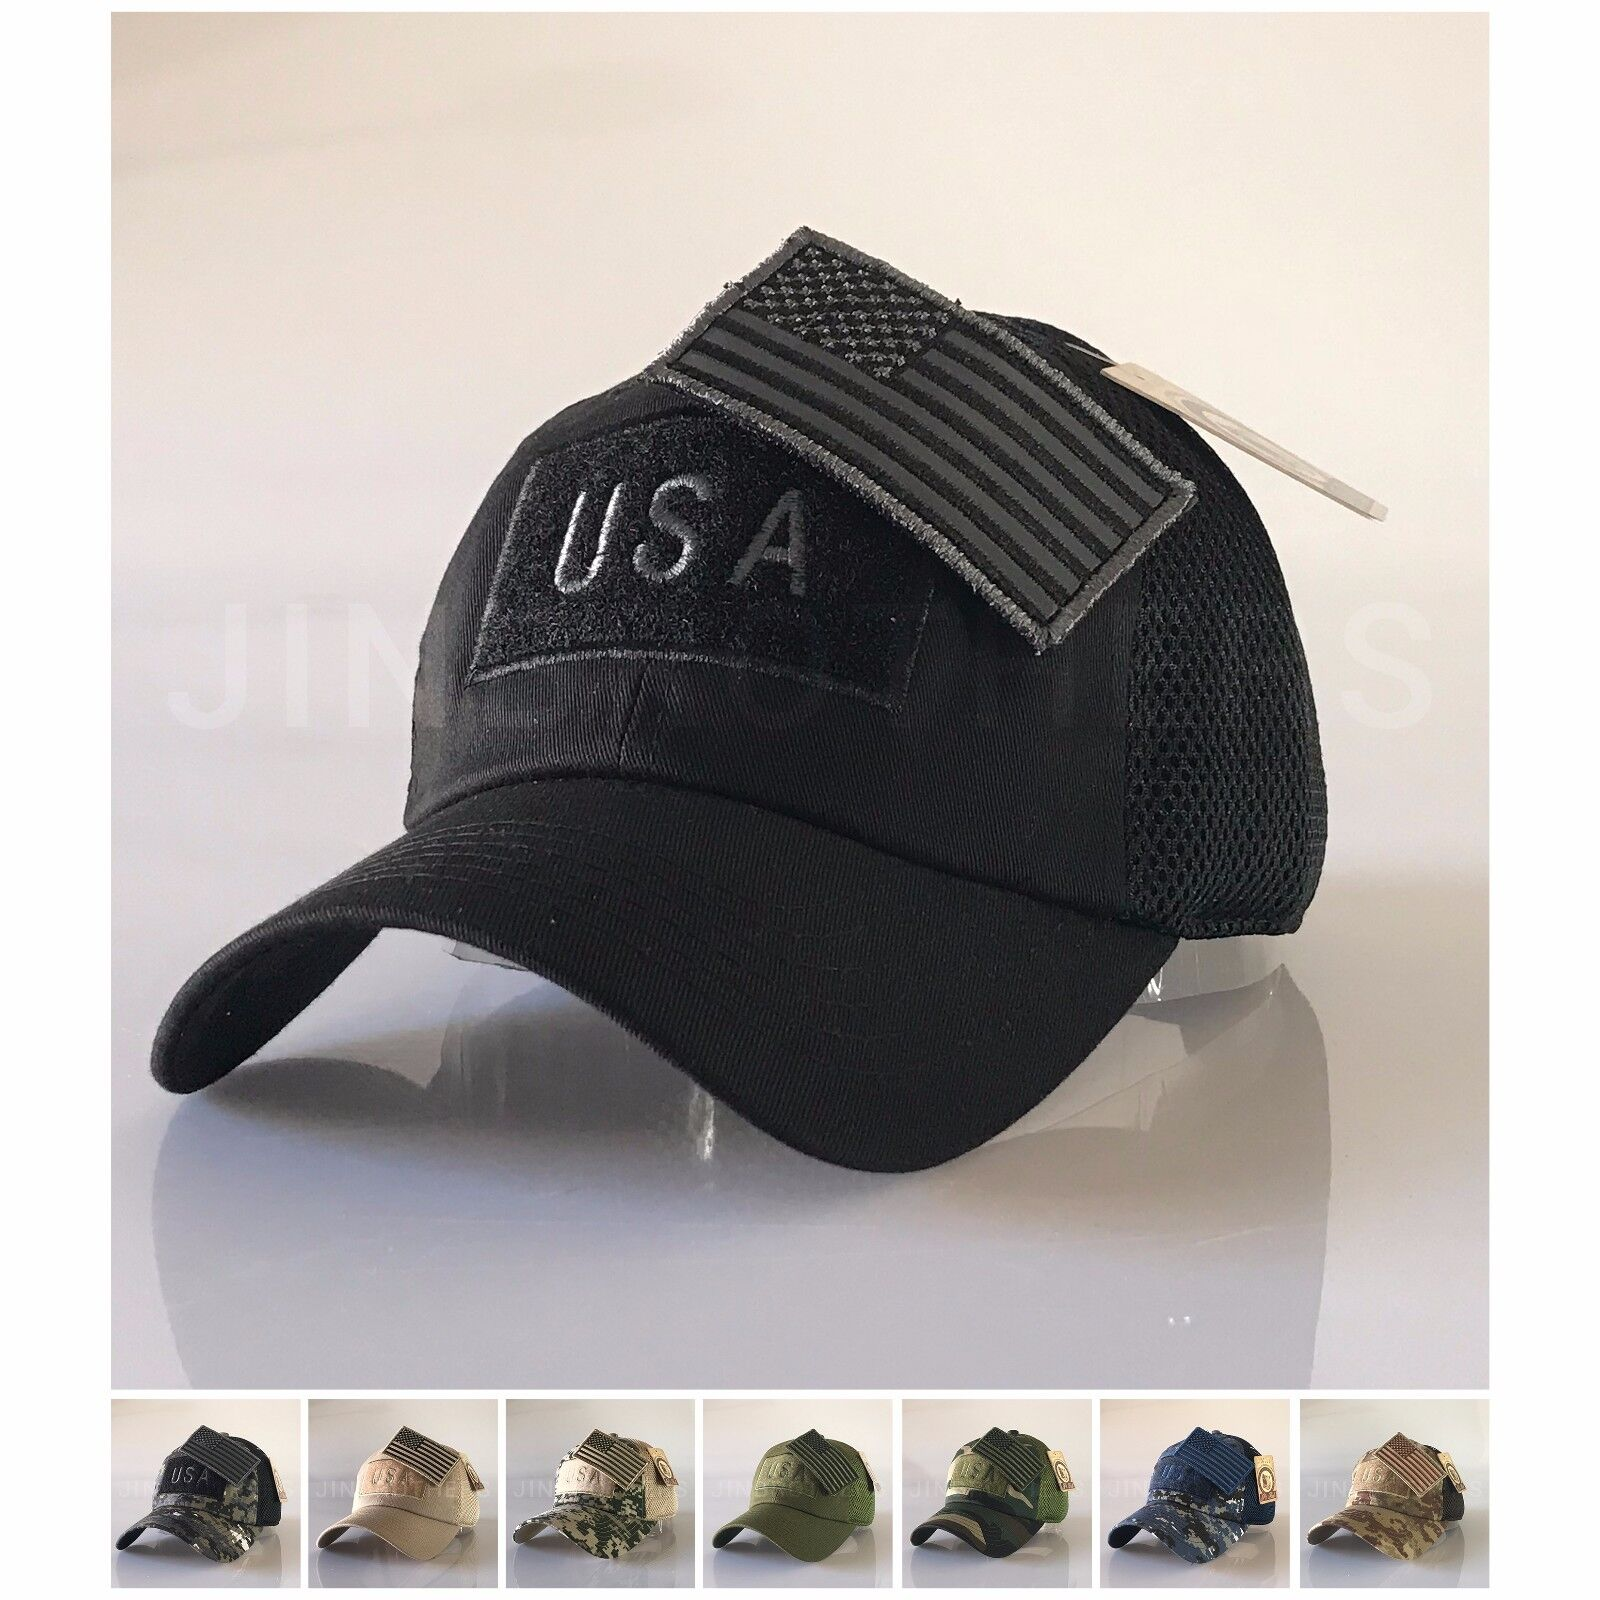 USA American Flag Patch Hat Military Tactical Operator Detac